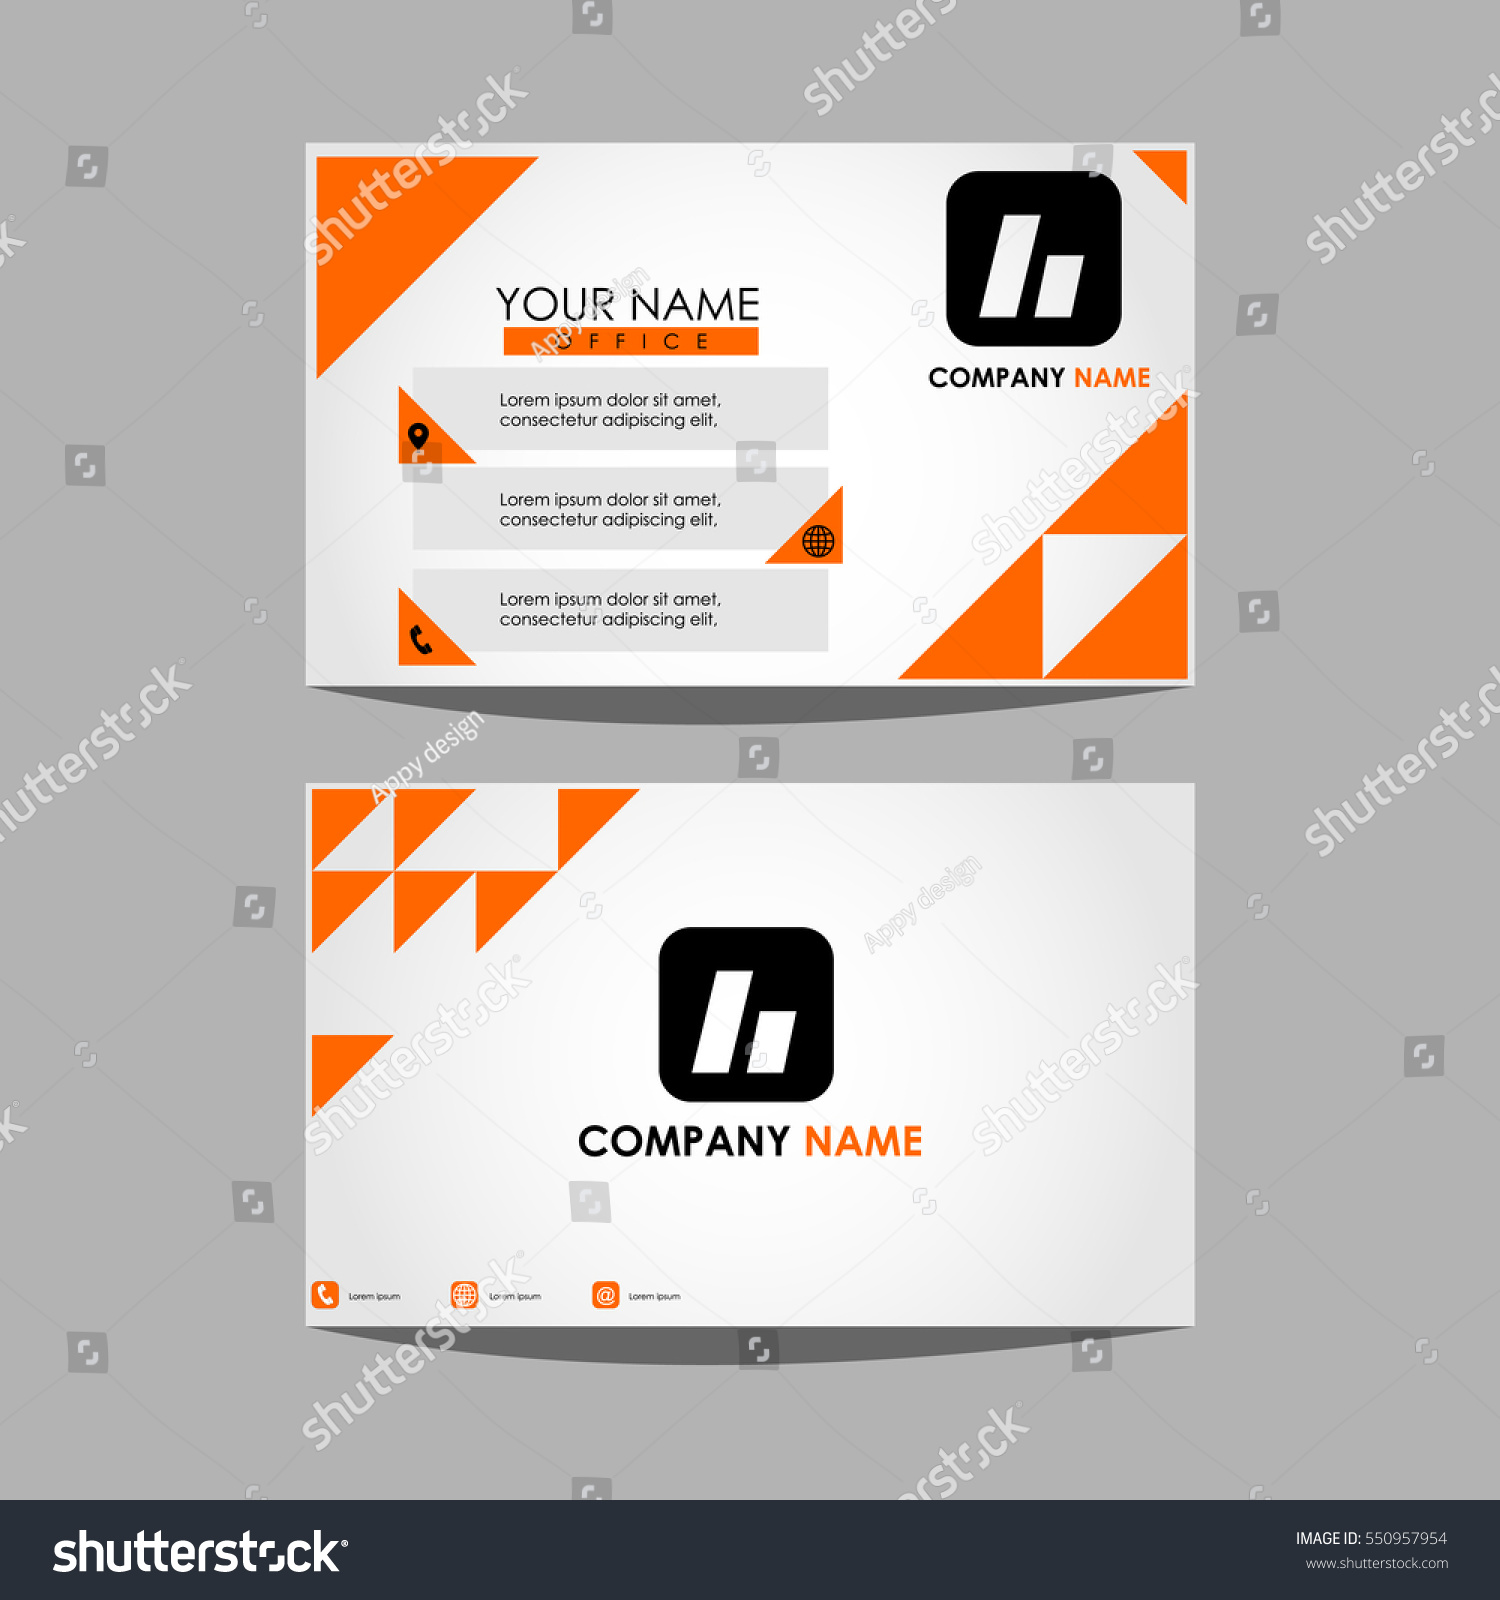 Layout template id card business personal stock vector 550957954 layout template id card for business in personal magicingreecefo Image collections